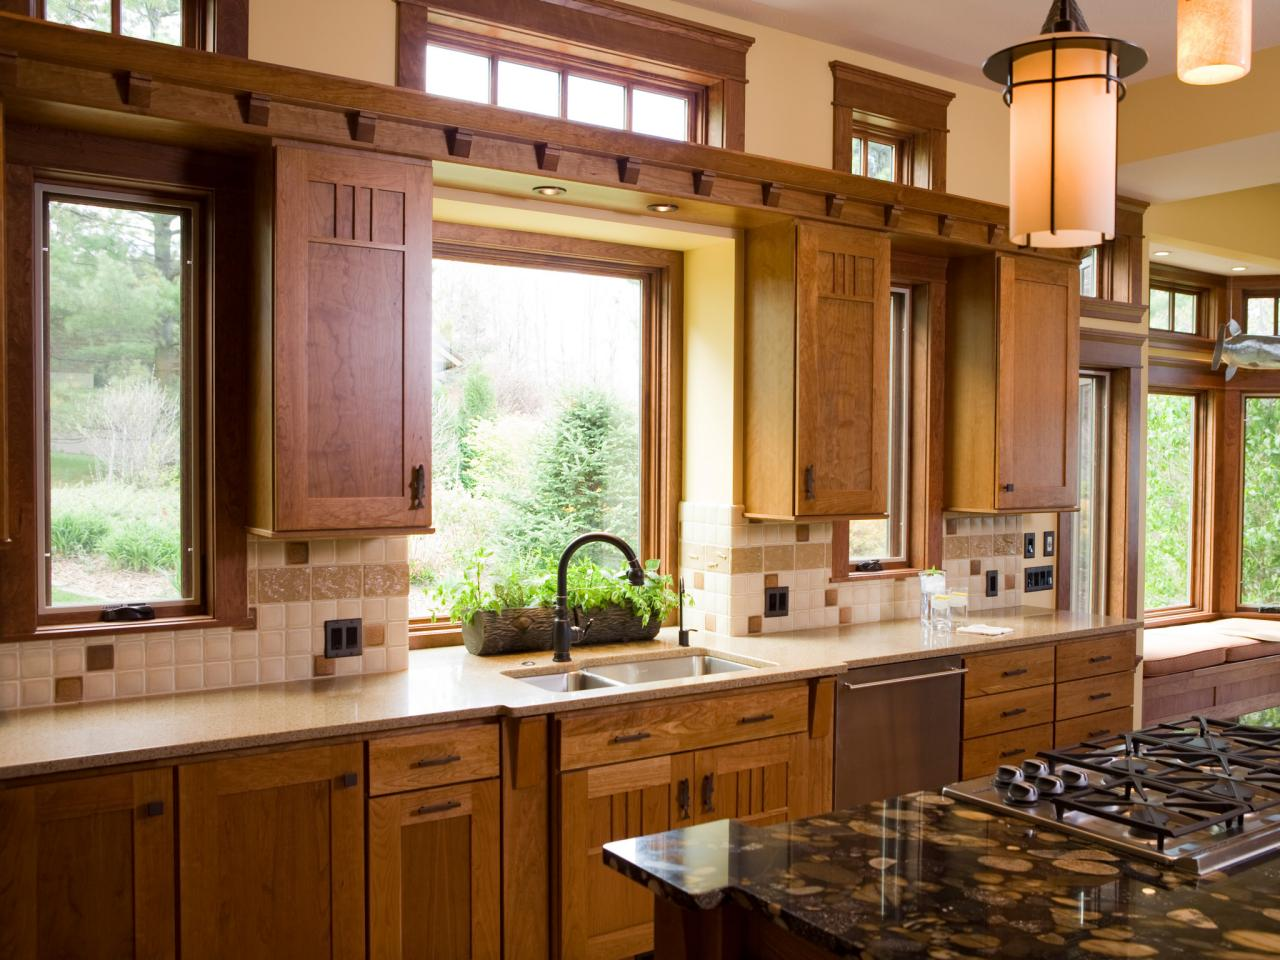 Large Kitchen Window Treatments HGTV Pictures amp Ideas